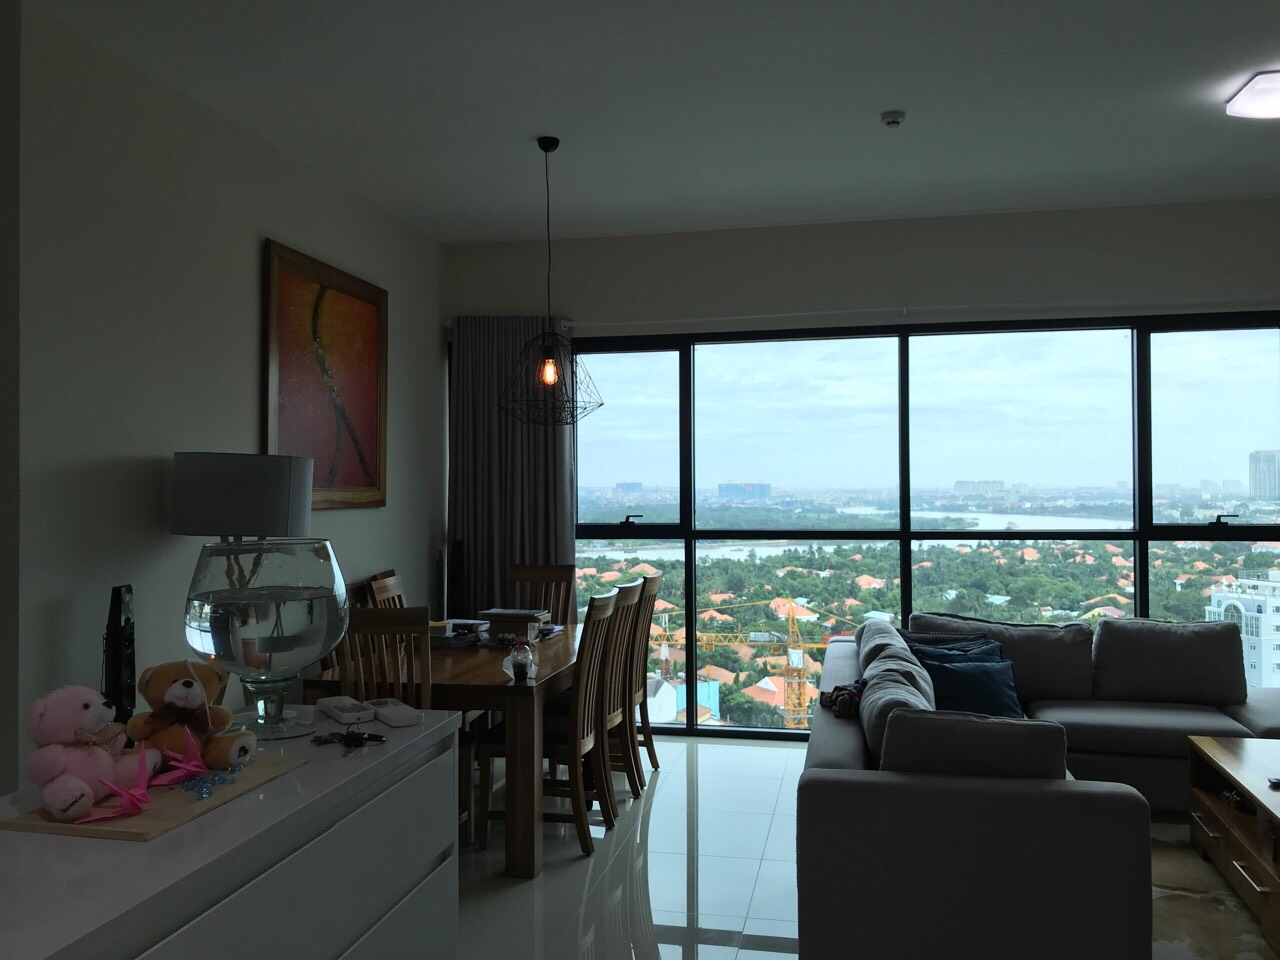 ascent apartment for rent in district 2 hcmc D217055 (5)